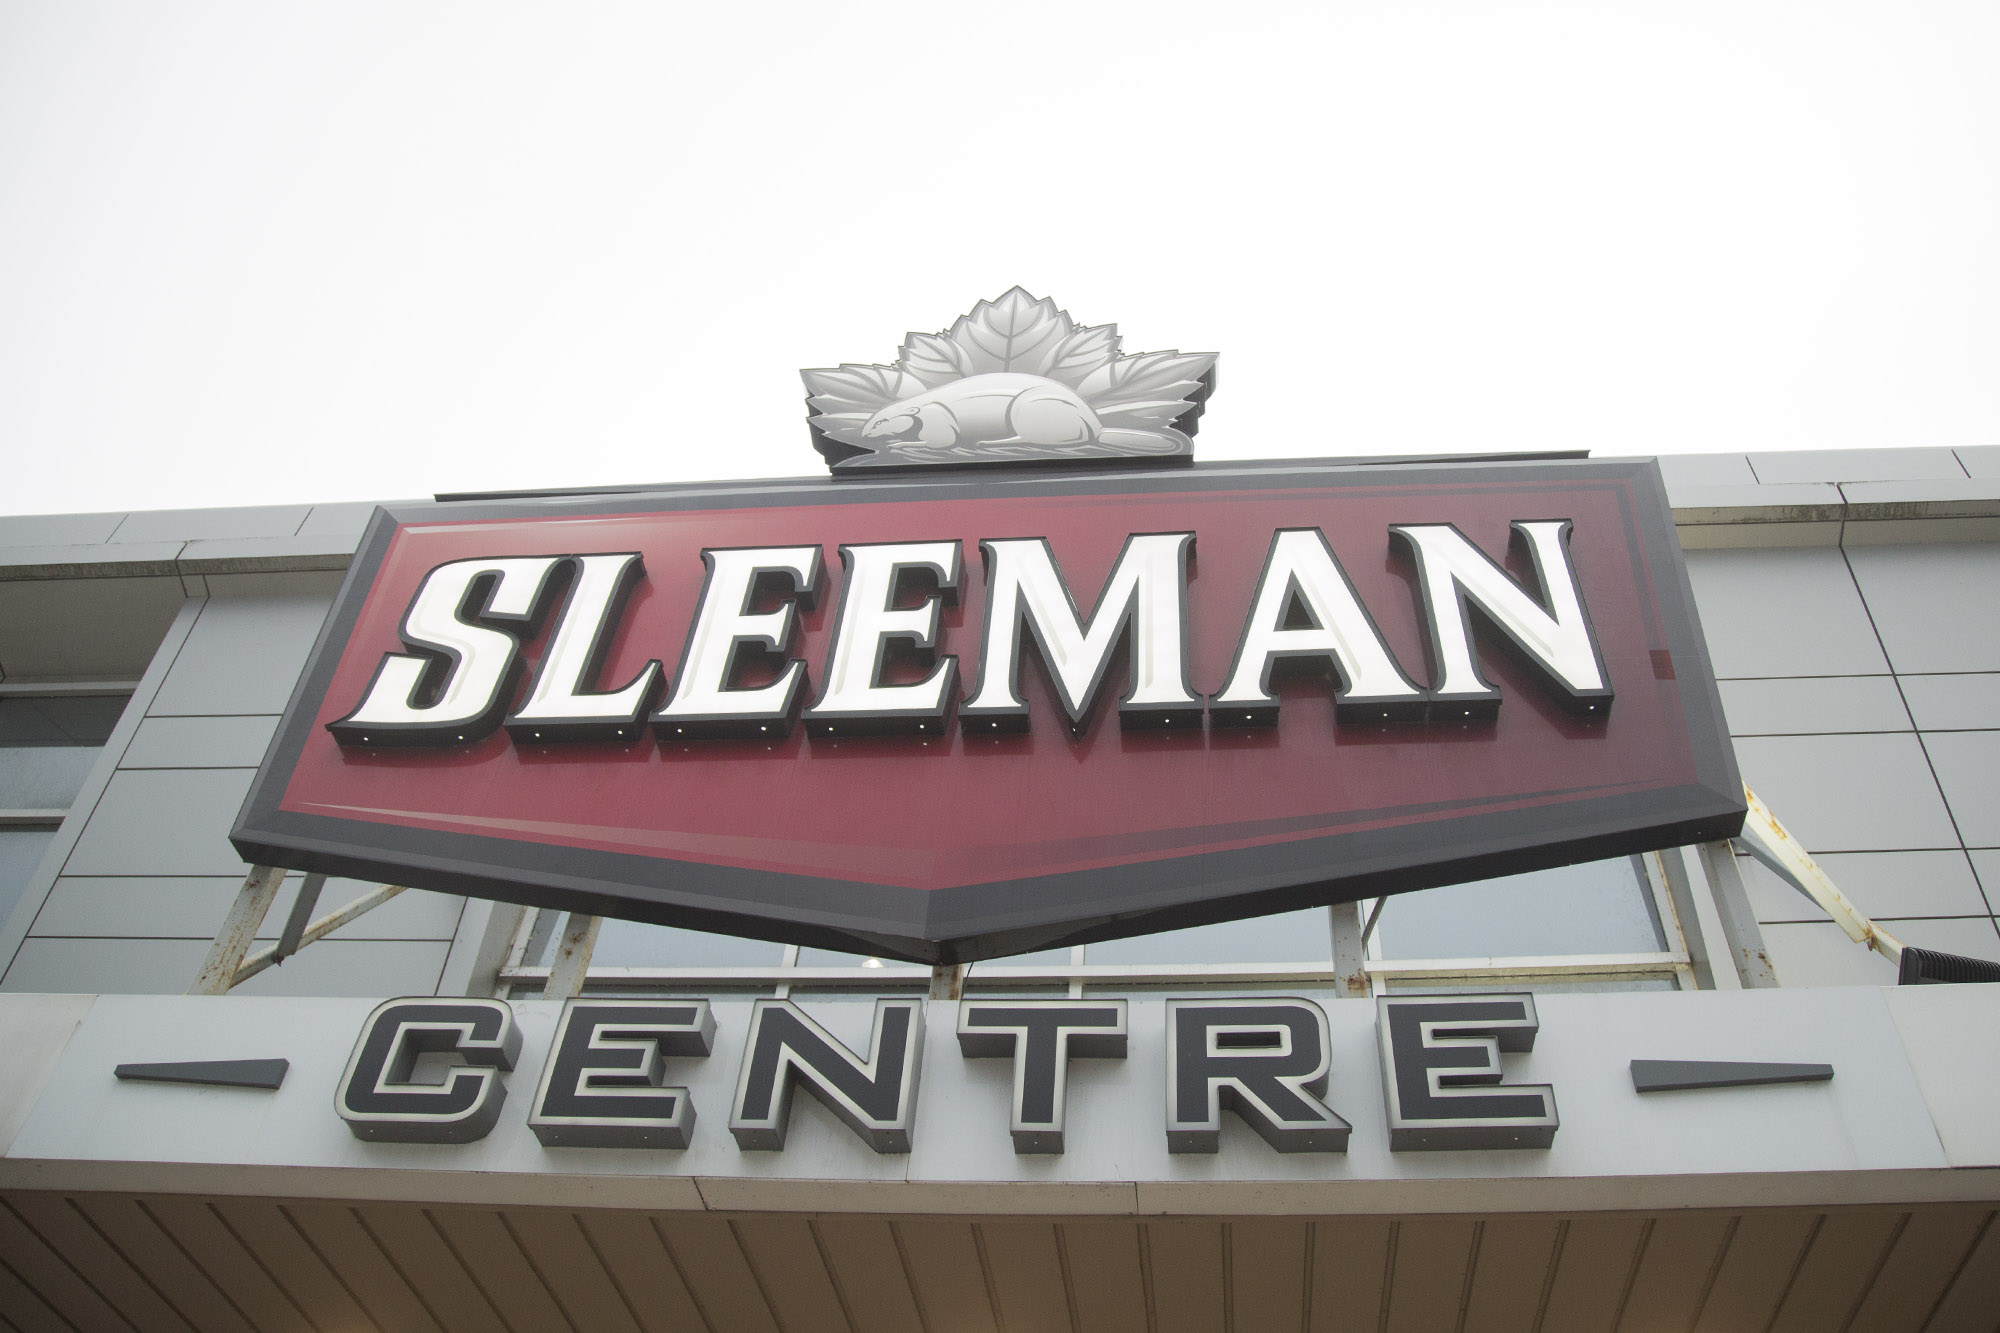 Sleeman Centre naming rights up for renewal in June